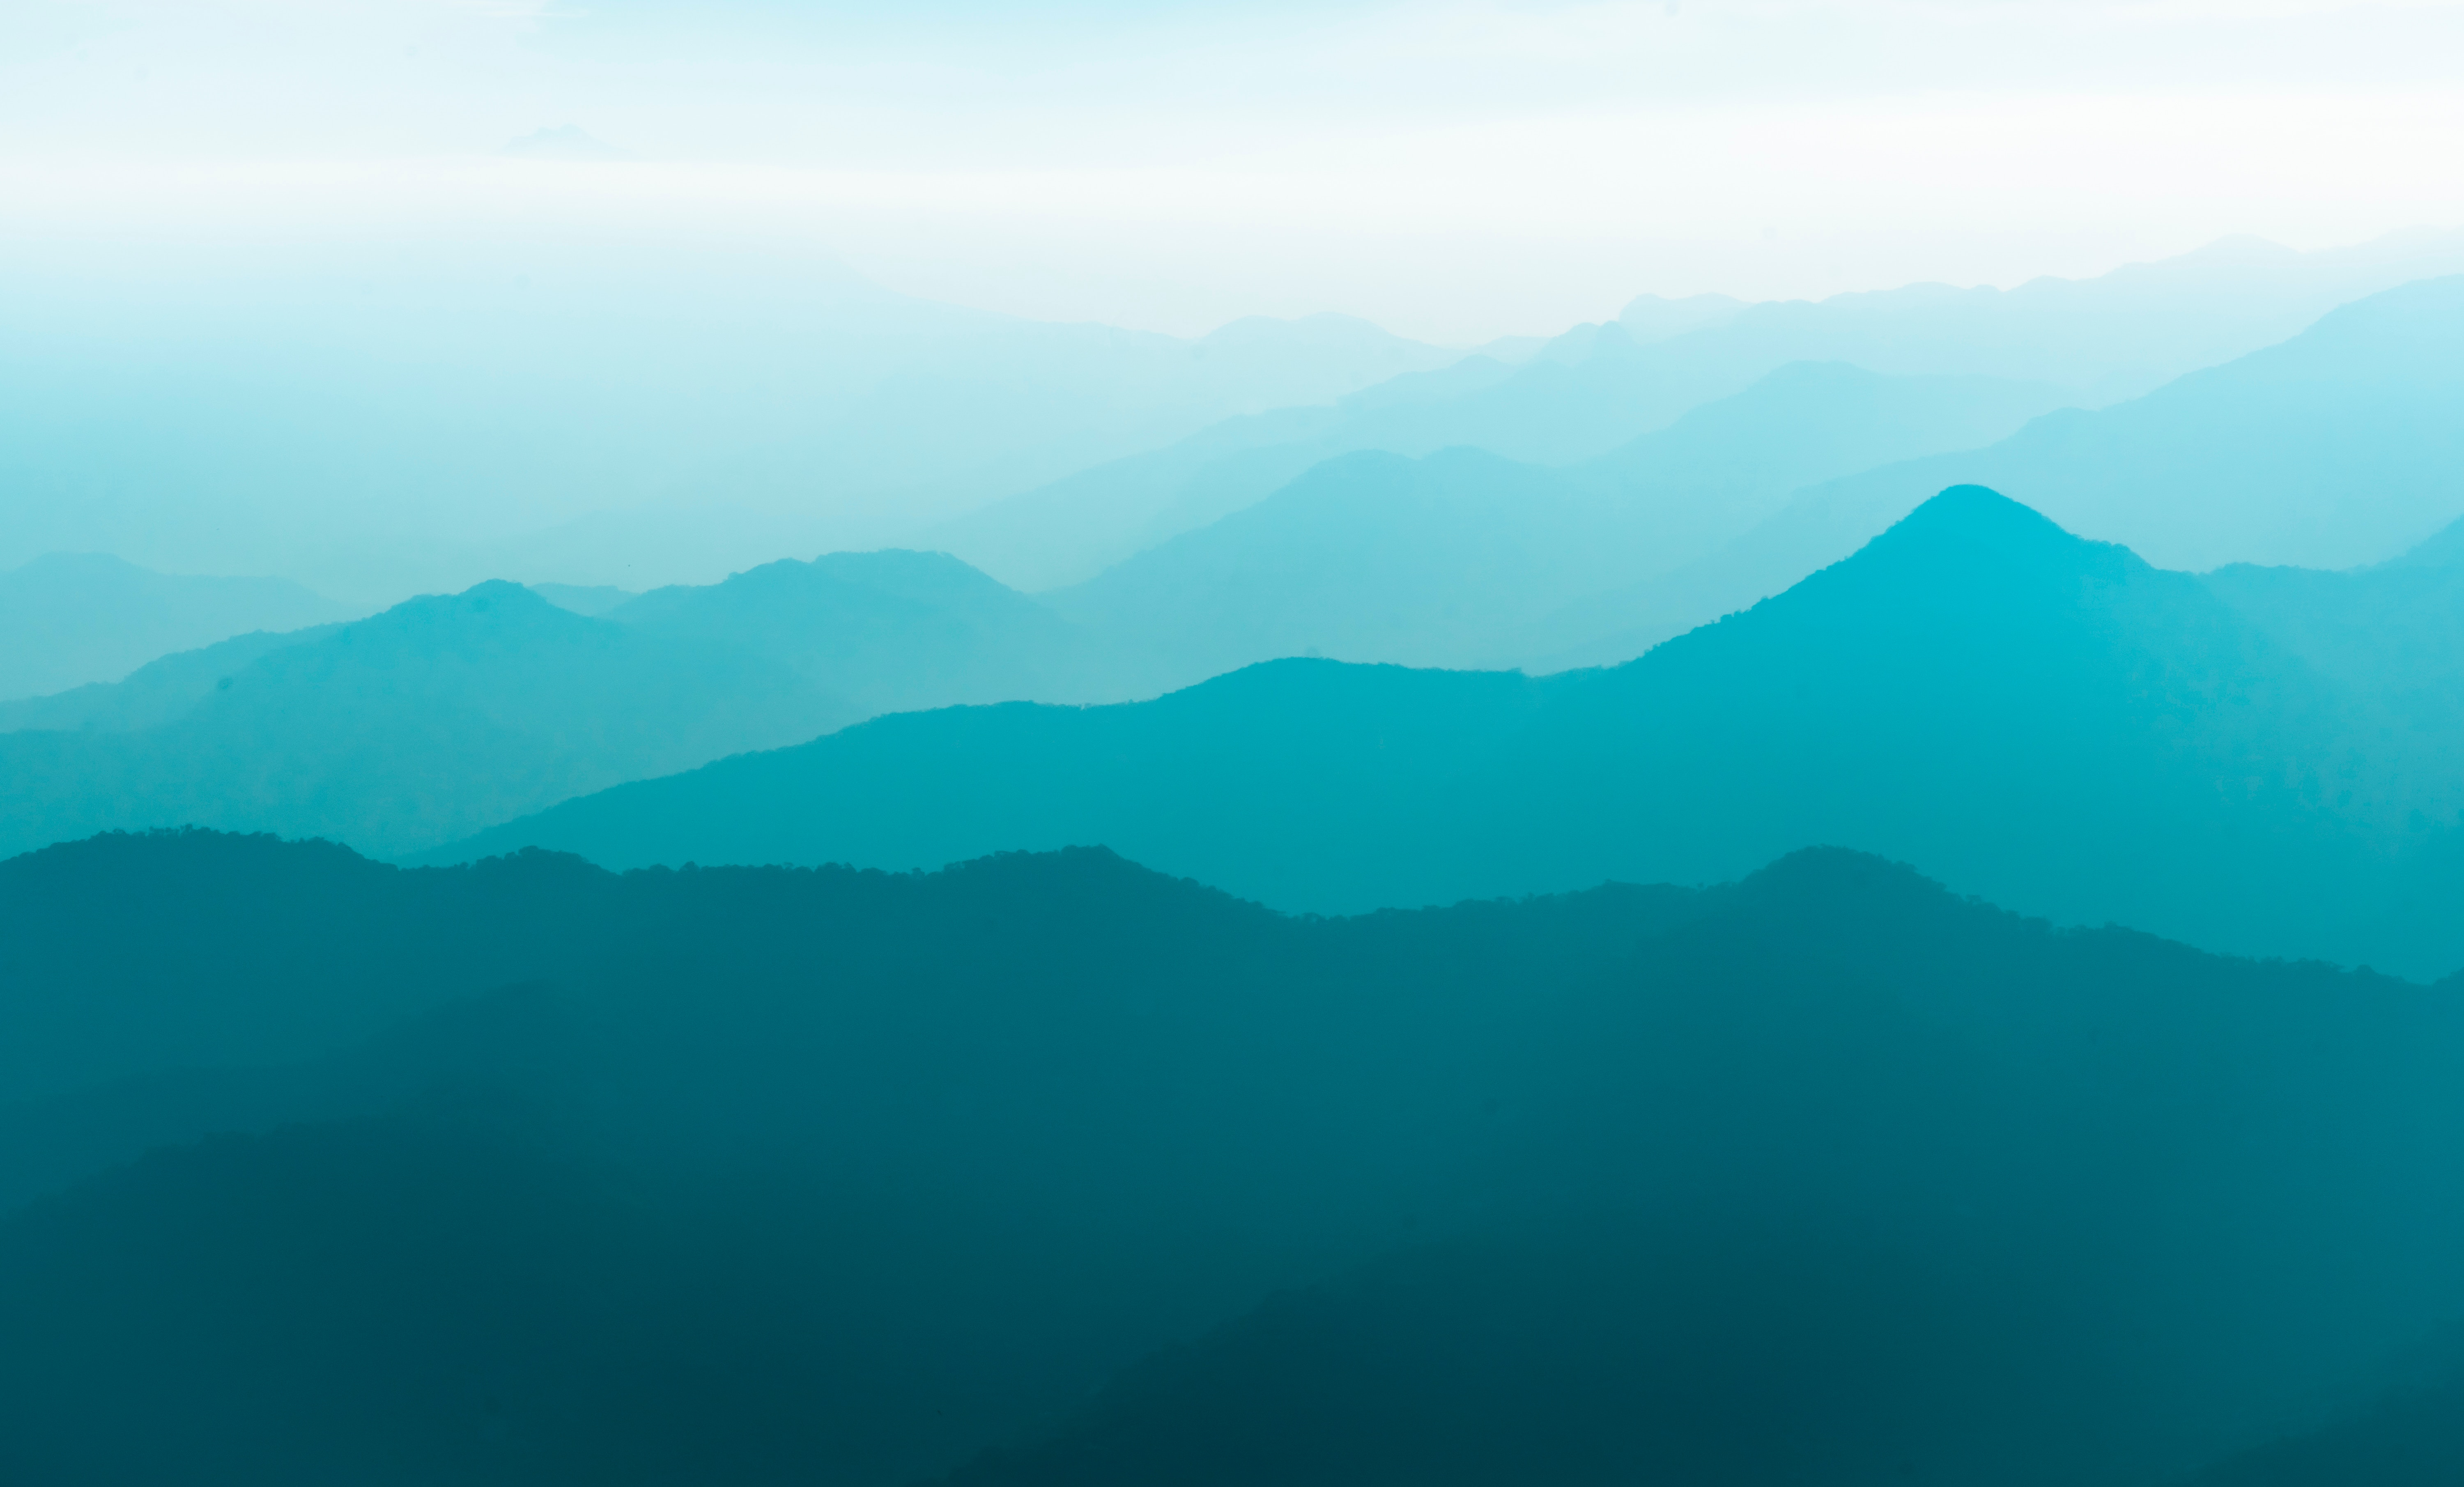 Teal Desktop Backgrounds Posted By Zoey Johnson